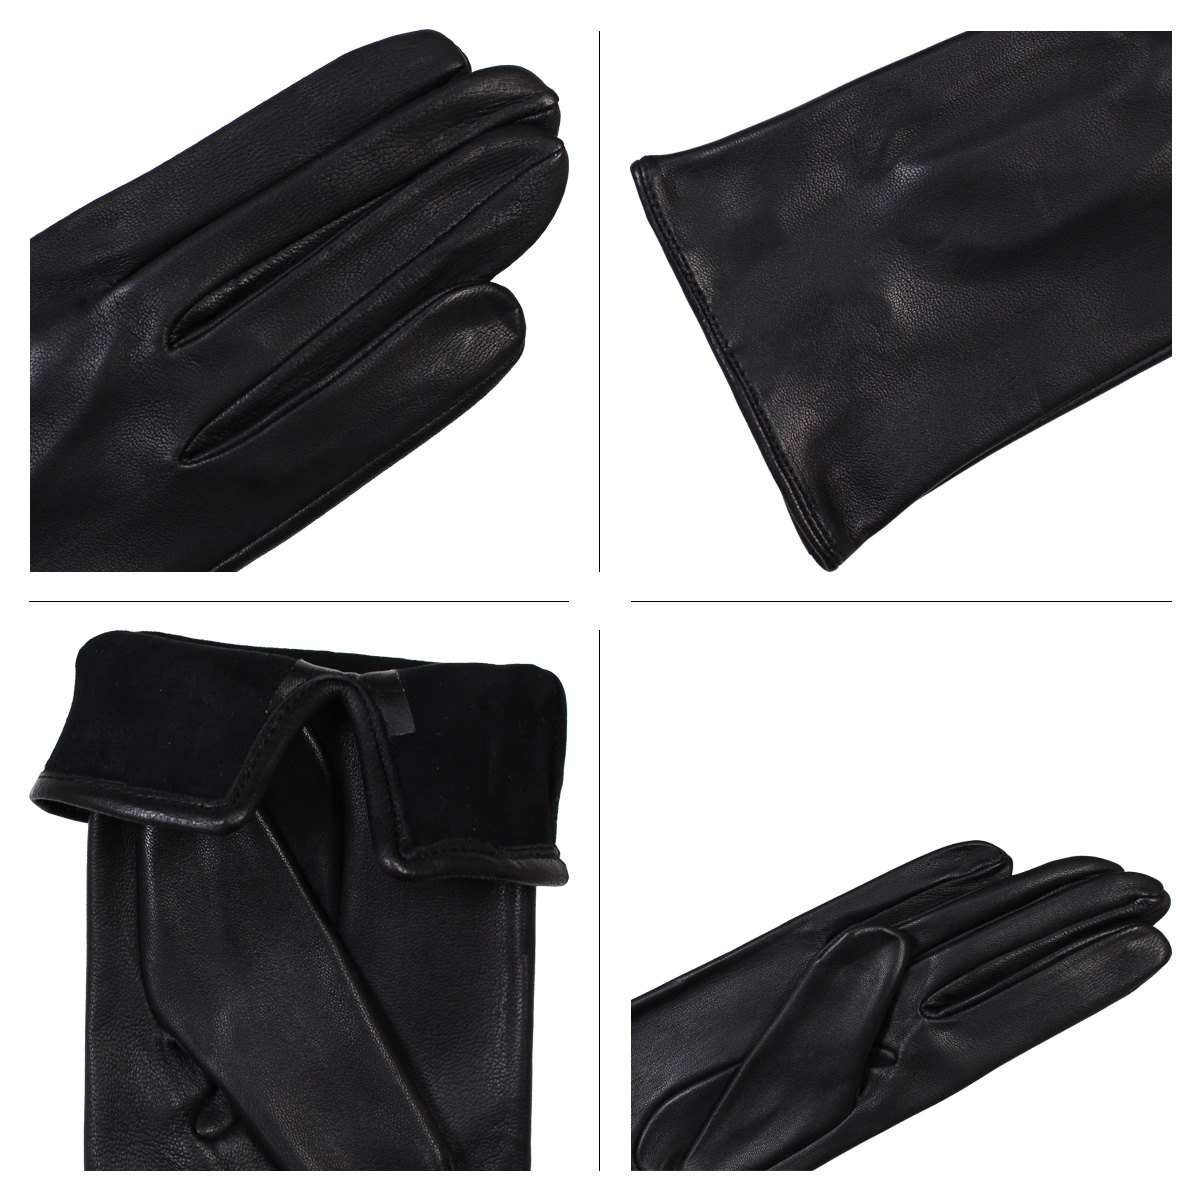 Mens leather gloves dents - Dents Gloves Mens Leather Gloves Dents James Bond Glove 5 1007 11 29